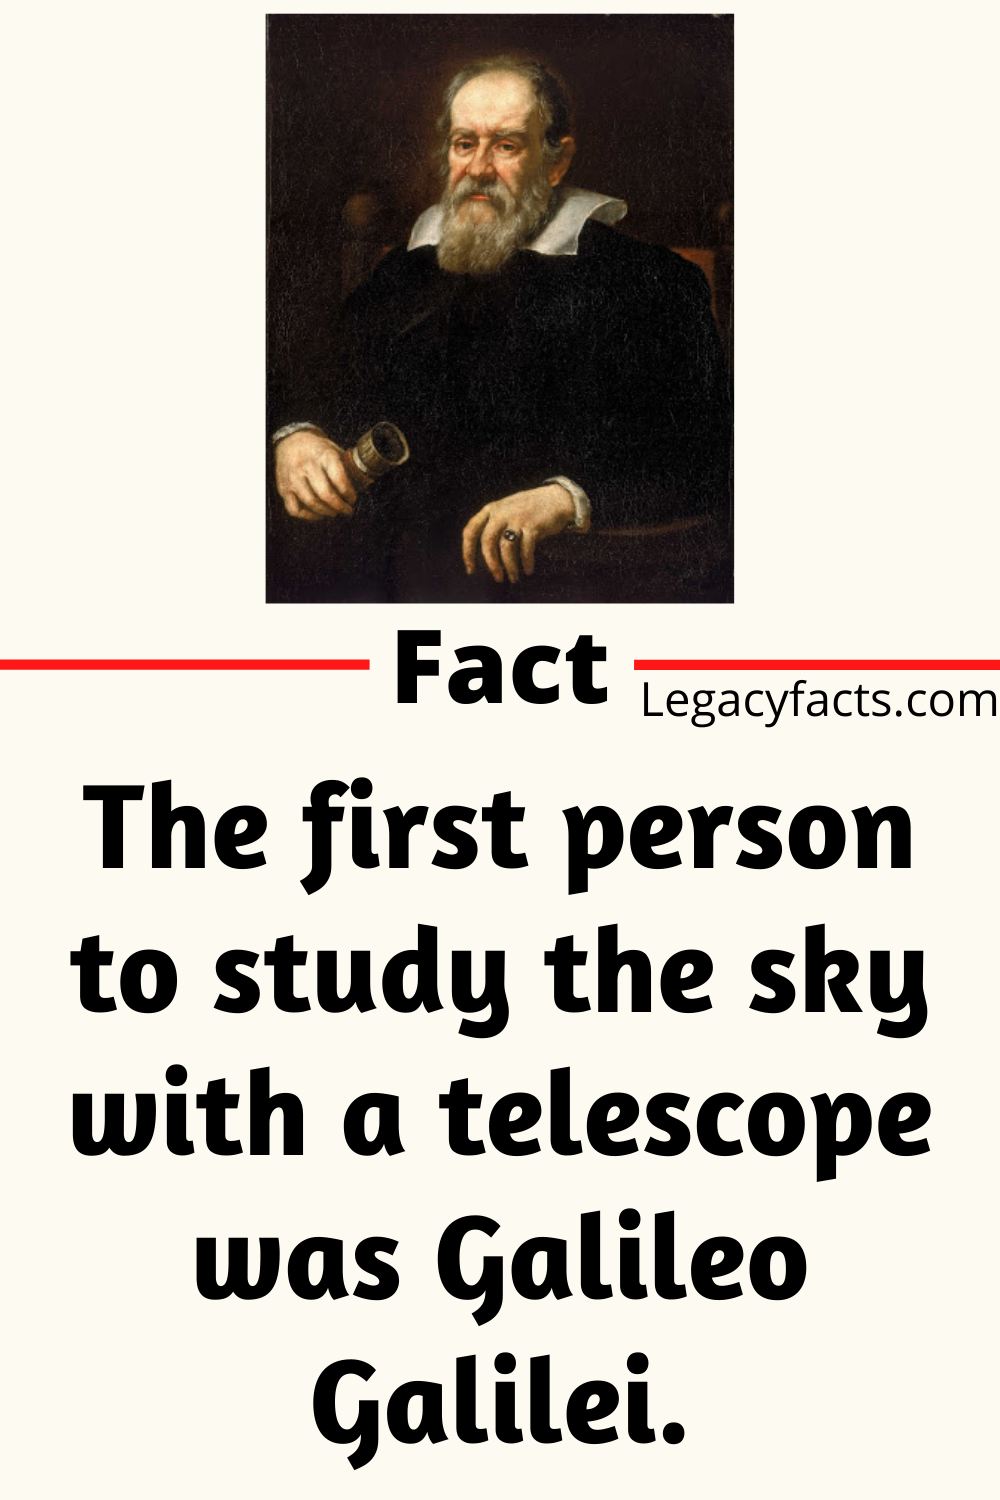 42 Facts About Galileo Galilei Legacy Facts Life Facts Facts Fun Facts